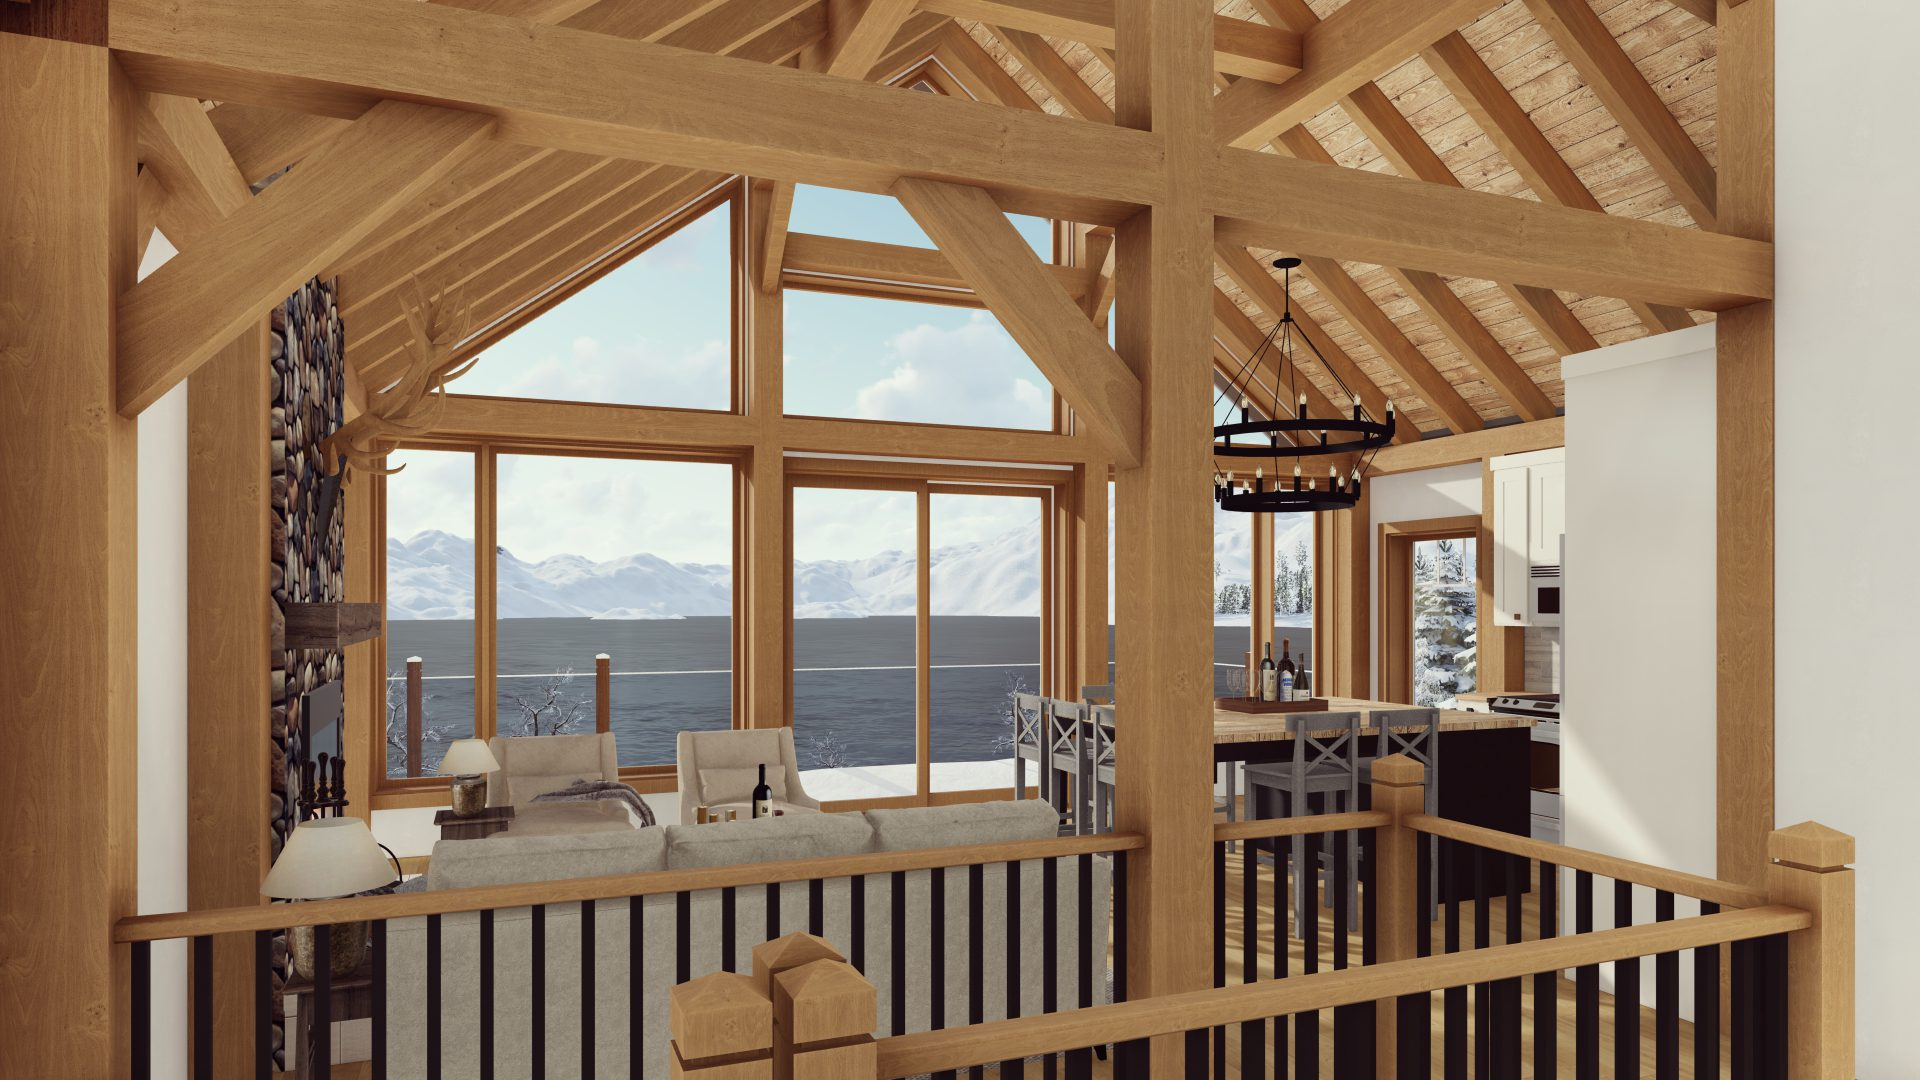 Timber Frame Open Concept House Plans   The Rouge   Normerica   Interior, Living Room, Kitchen, Dining Room, Open Concept, Cathedral Ceiling